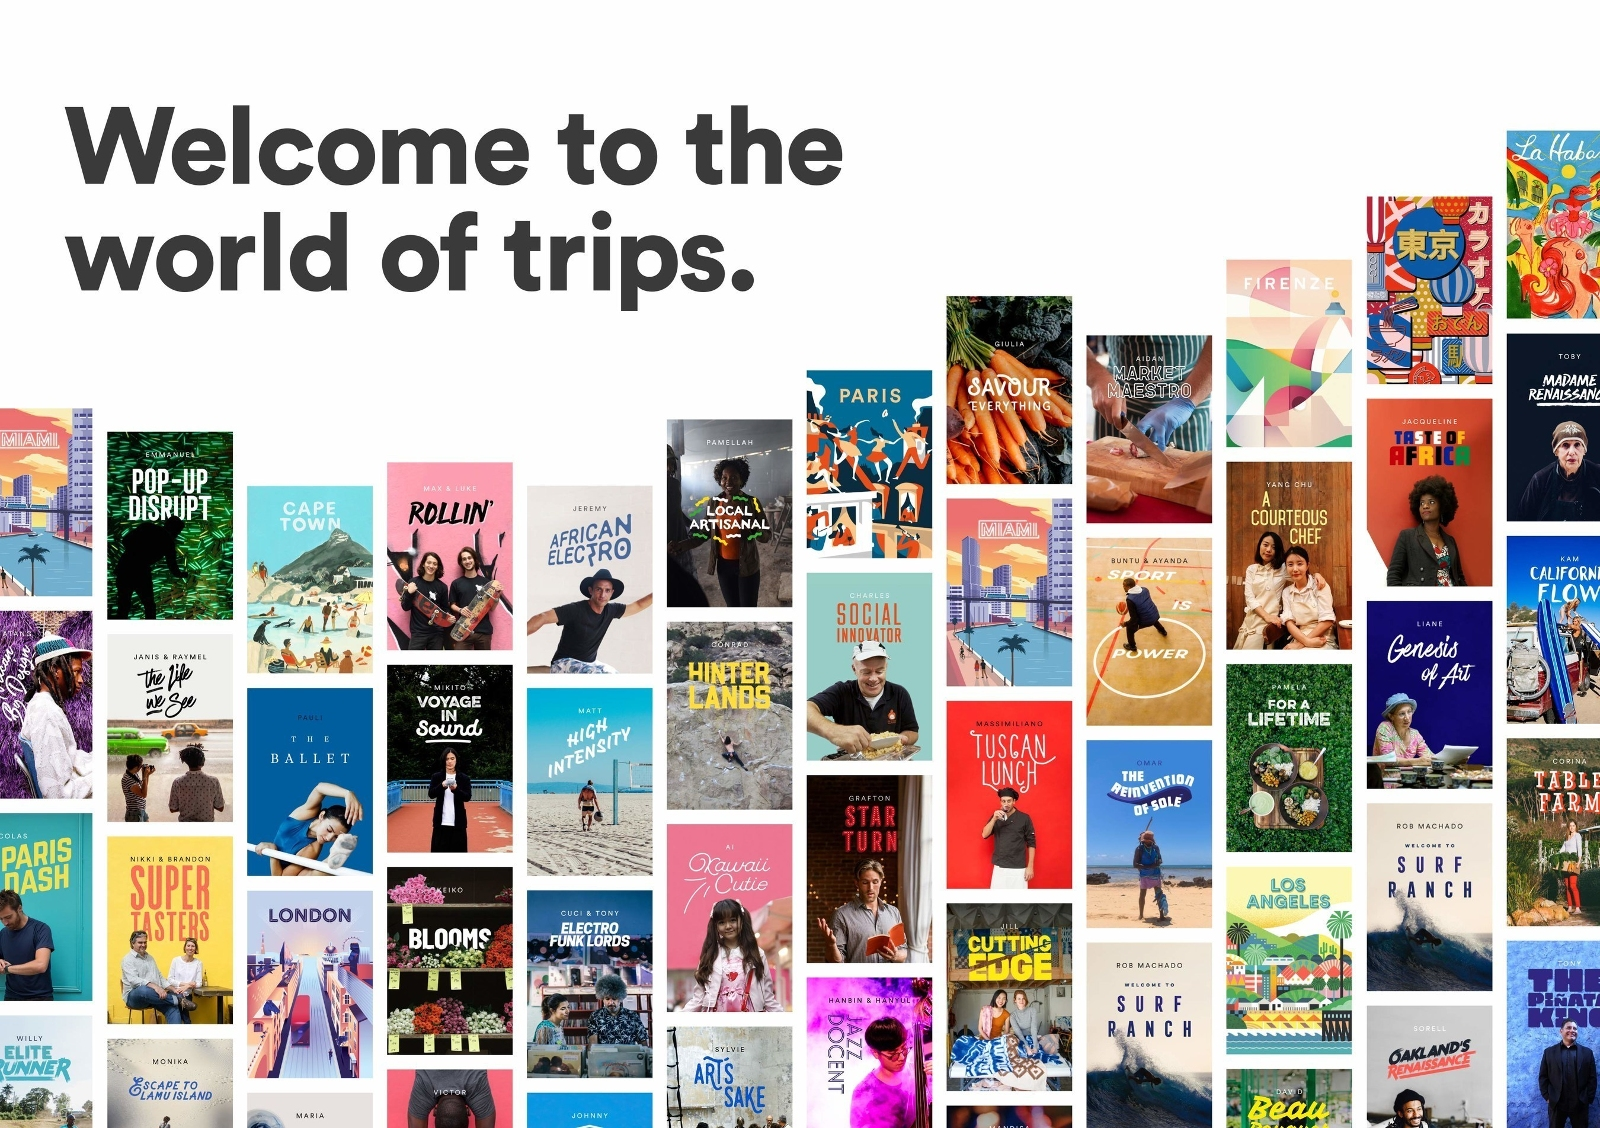 Airbnb Experiences / World of Trips